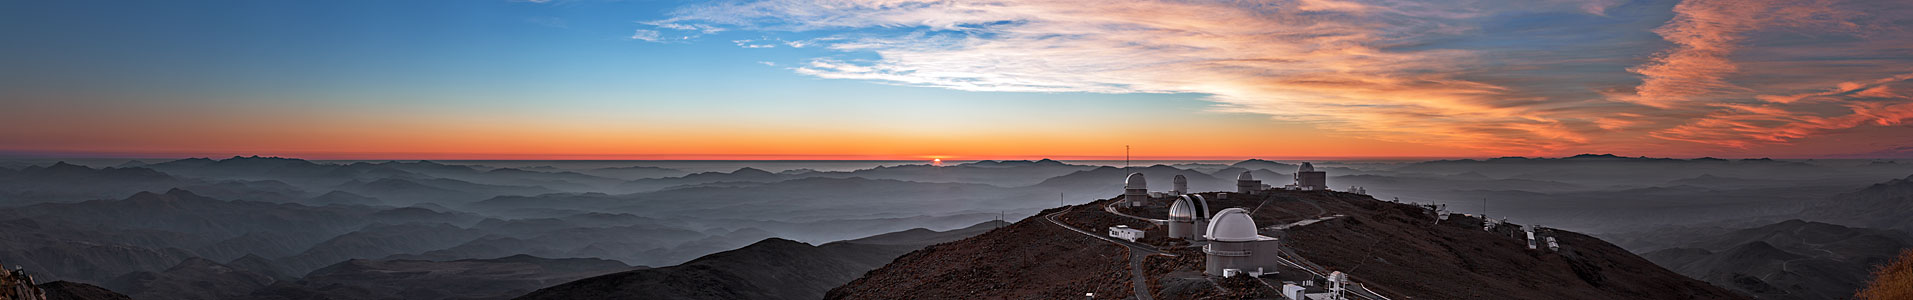 Sunset palette in the skies above La Silla